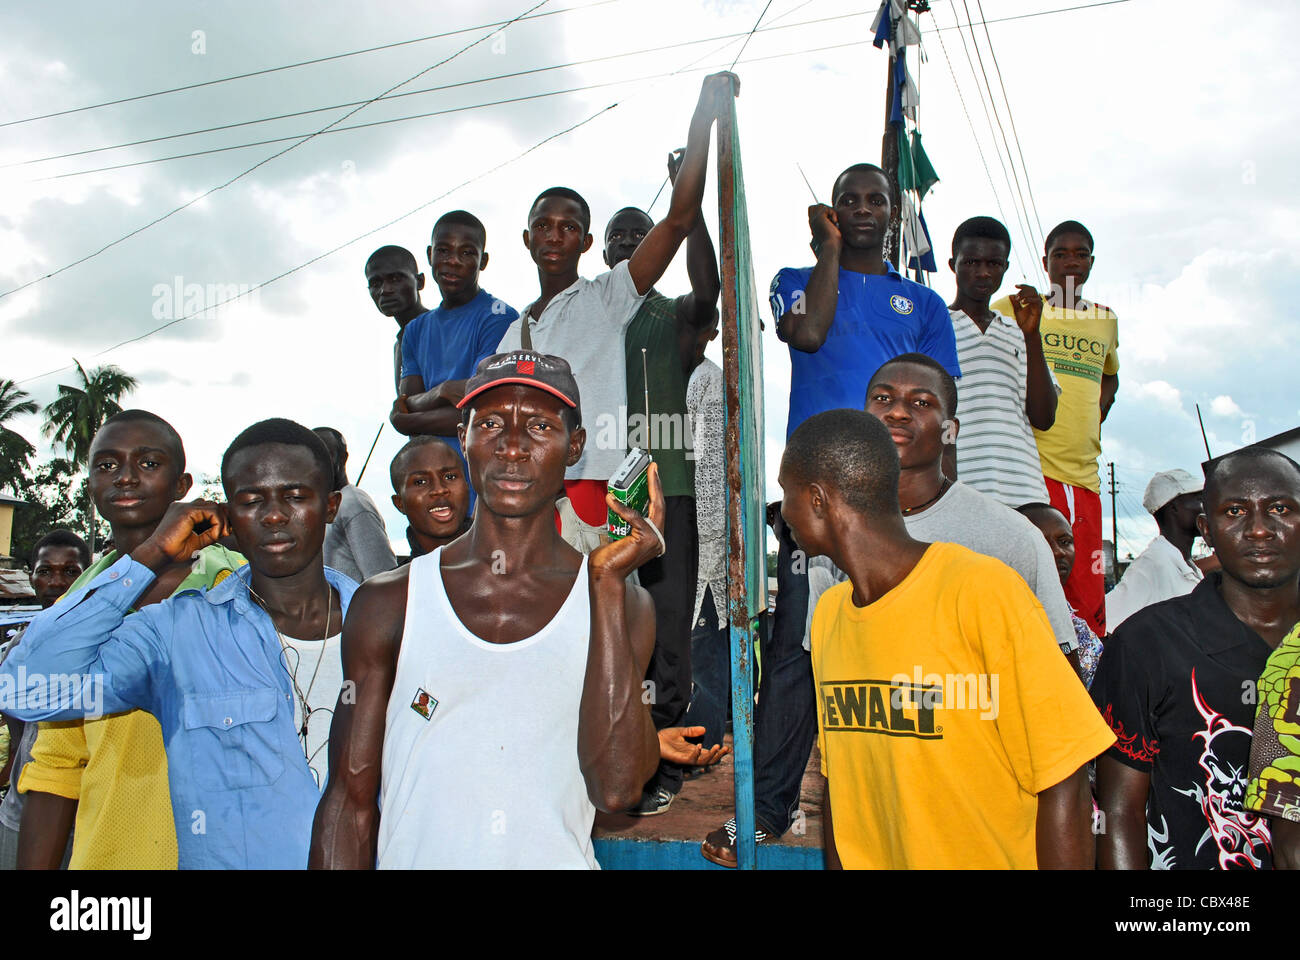 Men listen to breaking news as political violence flares in Bo ahead of elections in 2012, Sierra Leone - Stock Image